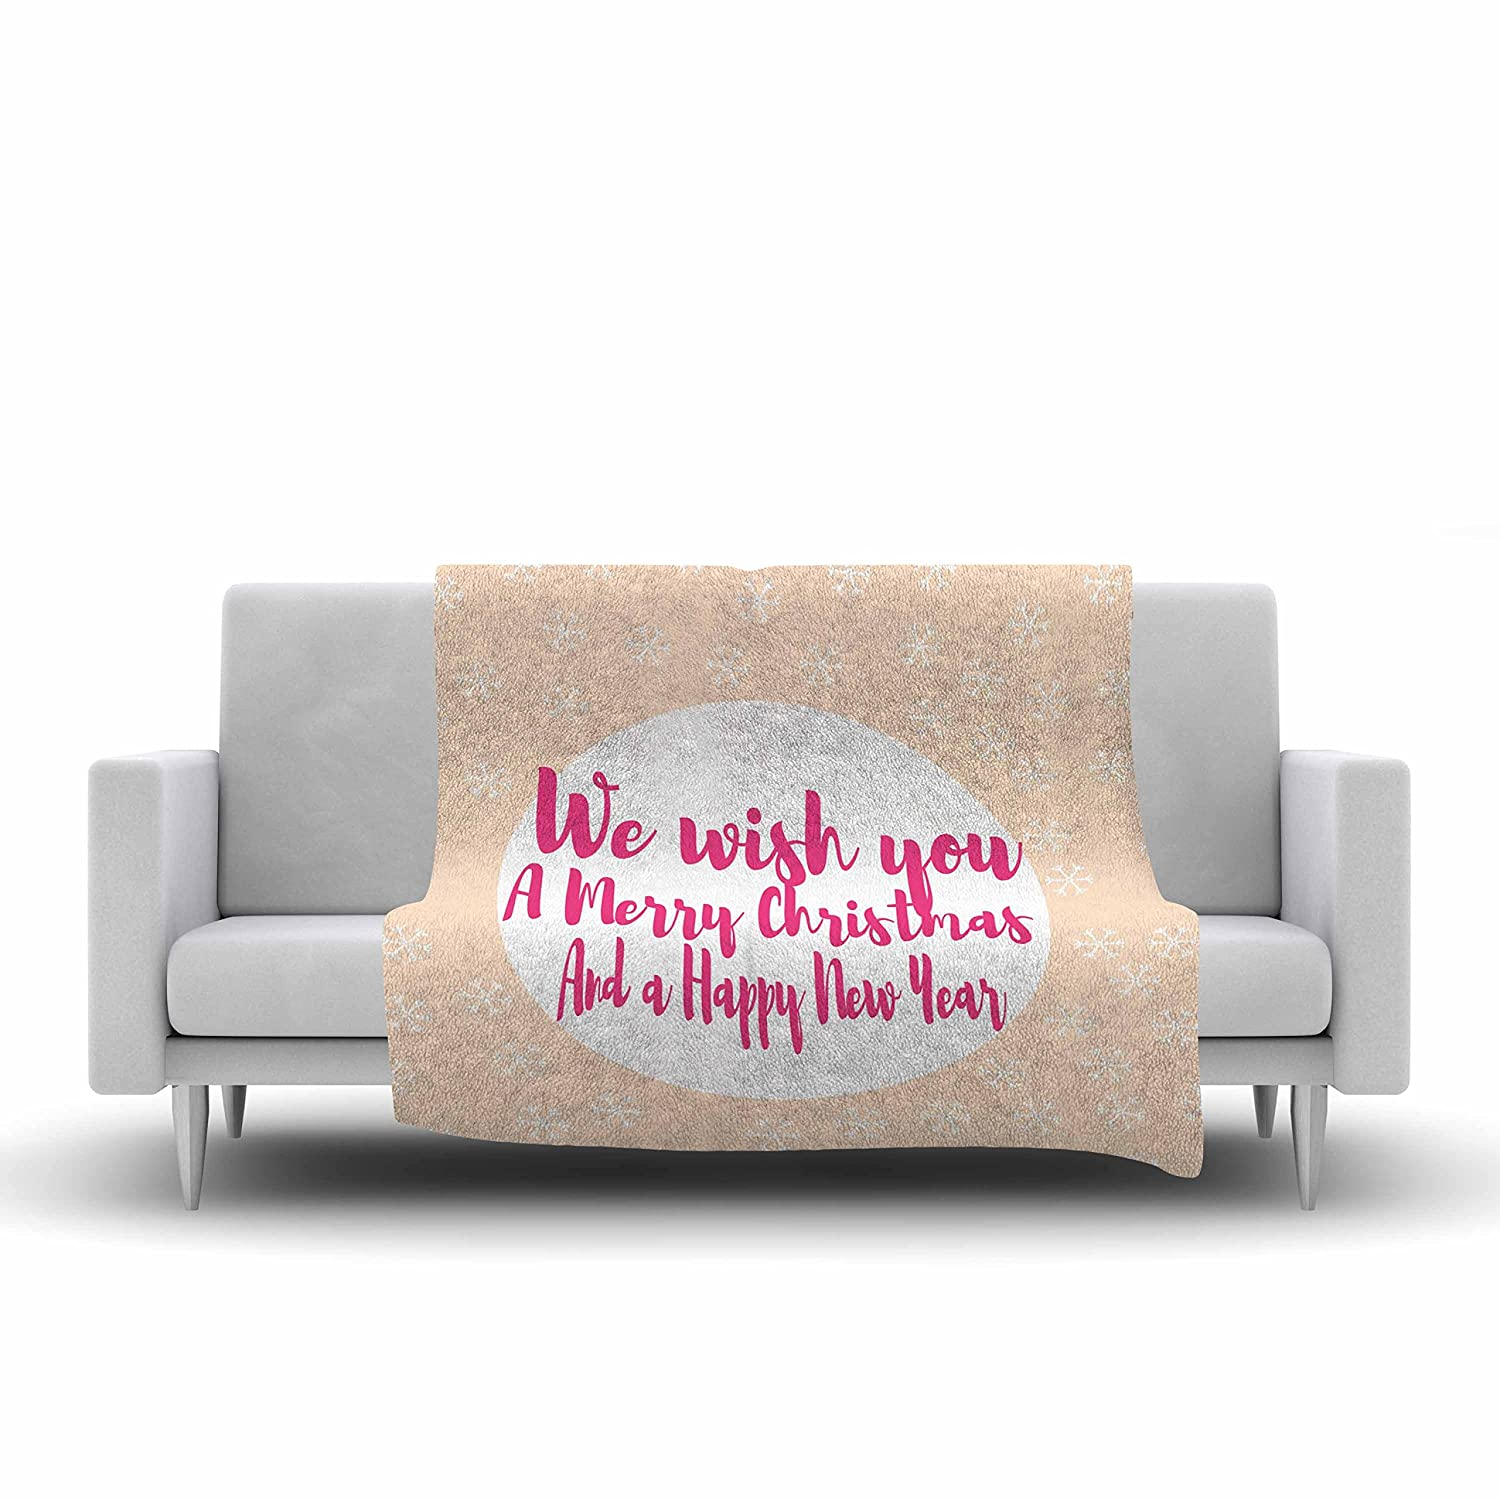 60 by 50-Inch Kess InHouse Suzanne Carter Merry Chistmas /& Happy New Year Peach Pink Fleece Throw Blanket 60 X 50